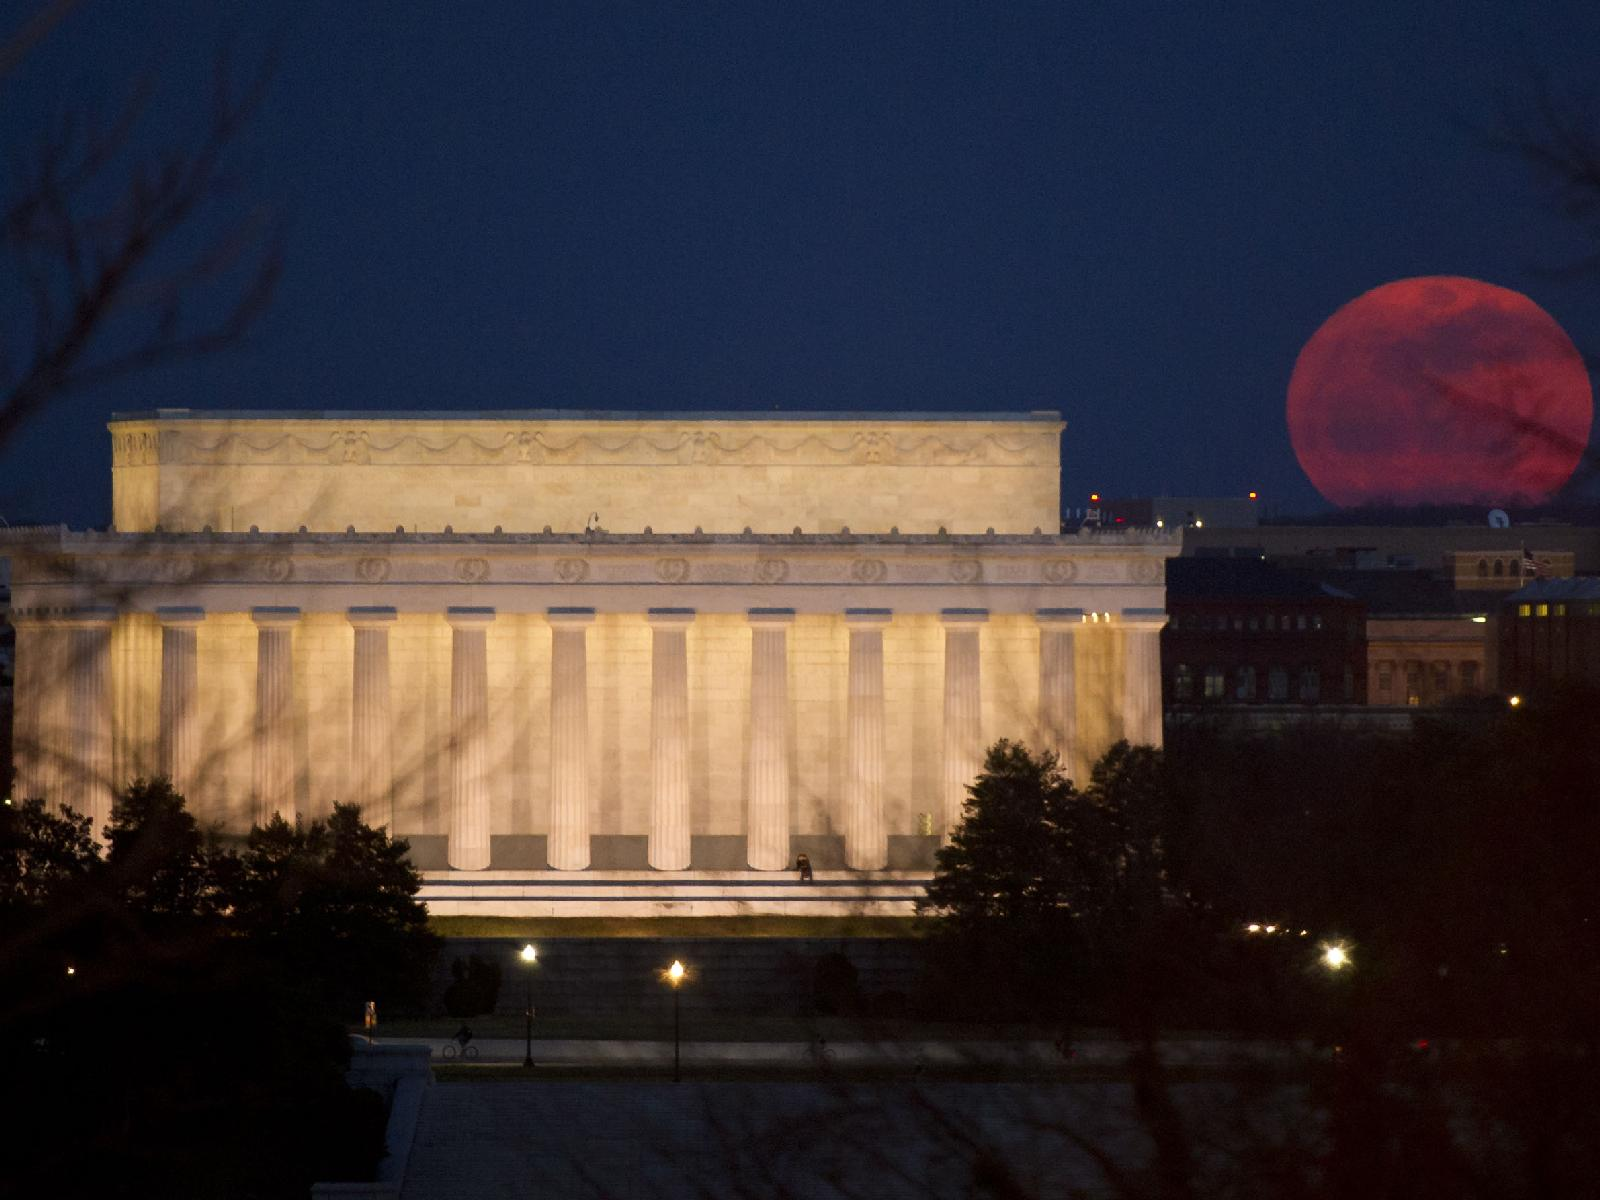 Abraham Lincoln vs. Supermoon